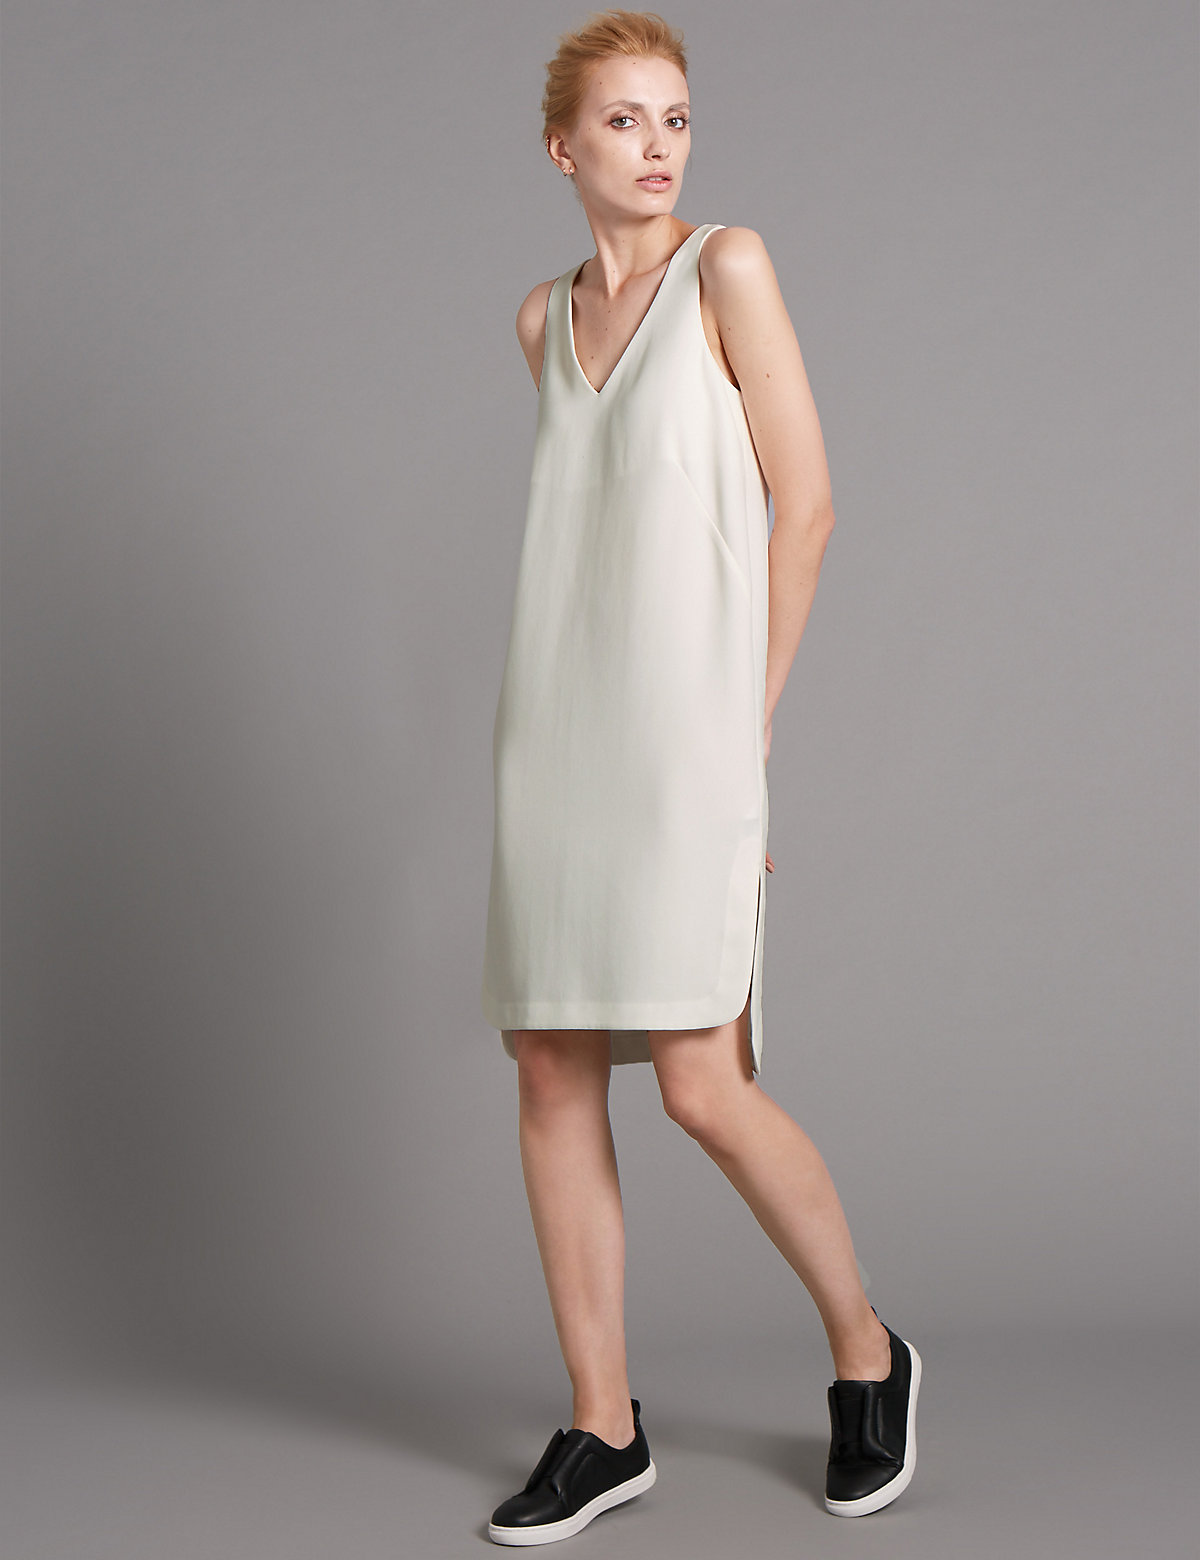 Autograph Lined Sleeveless Tunic Dress